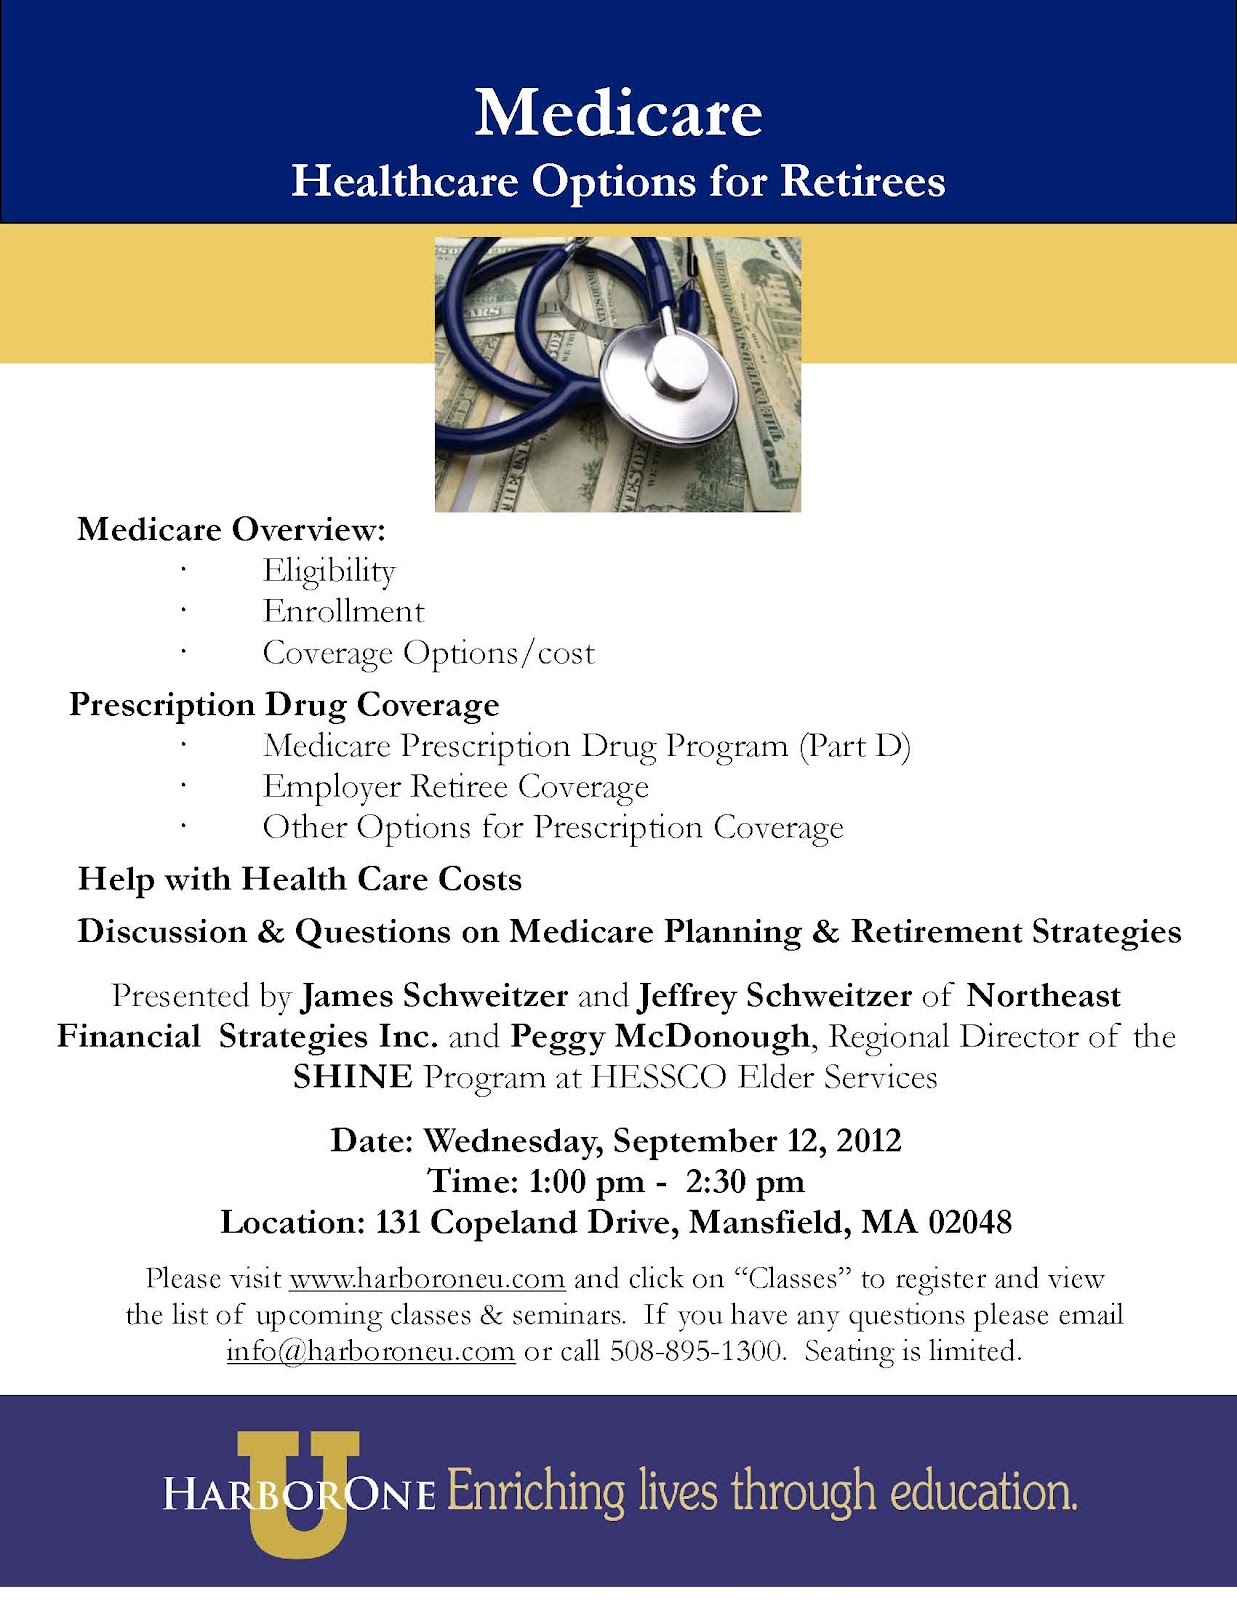 Register Today As Seating Is Limited Northeast Financial Strategies Inc  Wrentham Ma Tax, Accounting